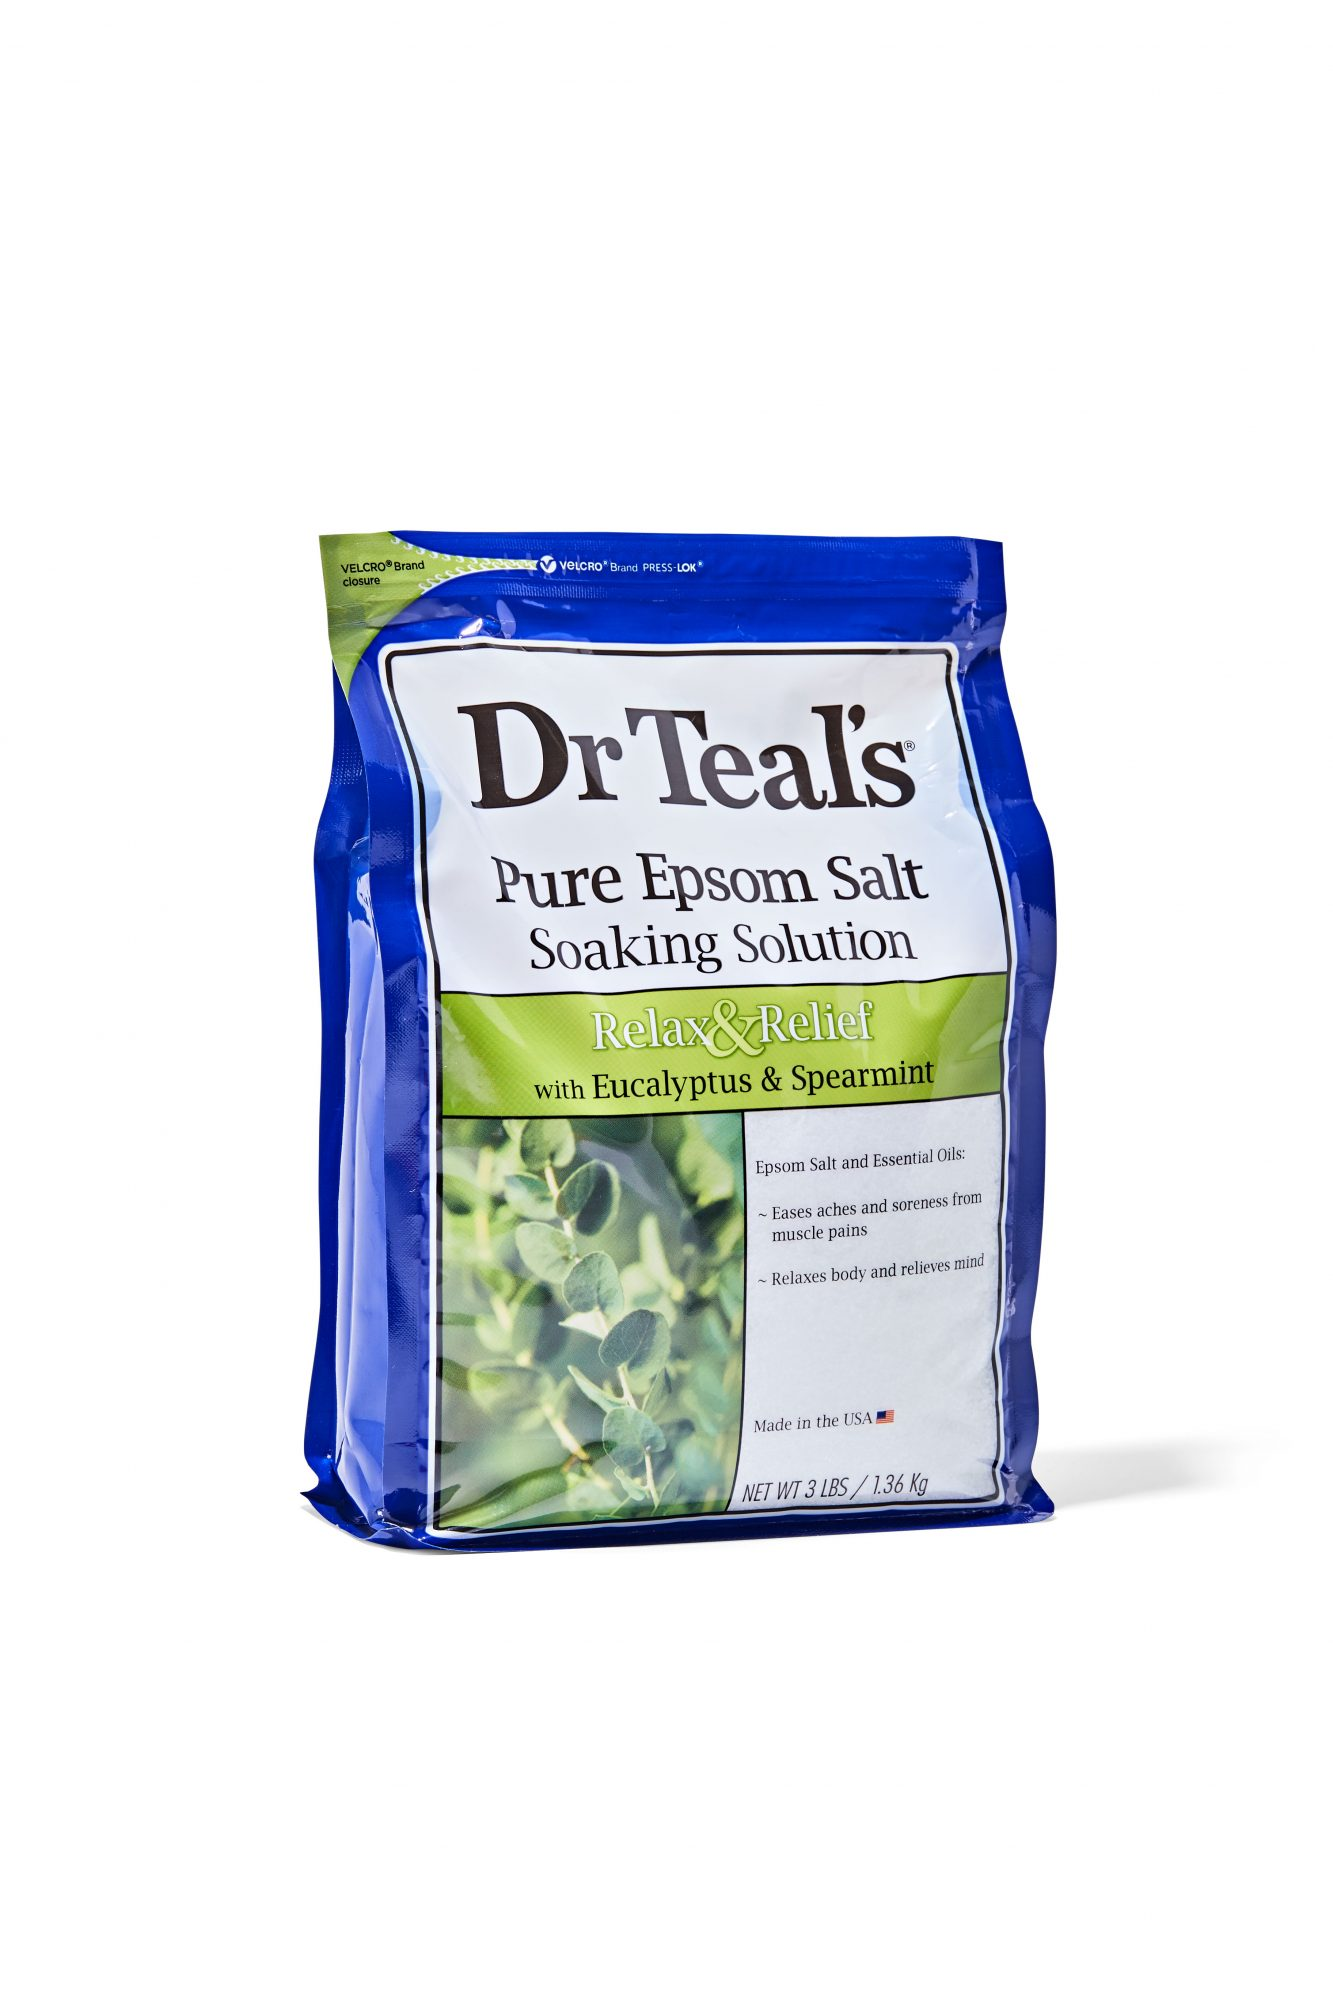 Dr Teal's Pure Epsom Salt Soaking Solution Relax & Relief with Eucalyptus & Spearmint